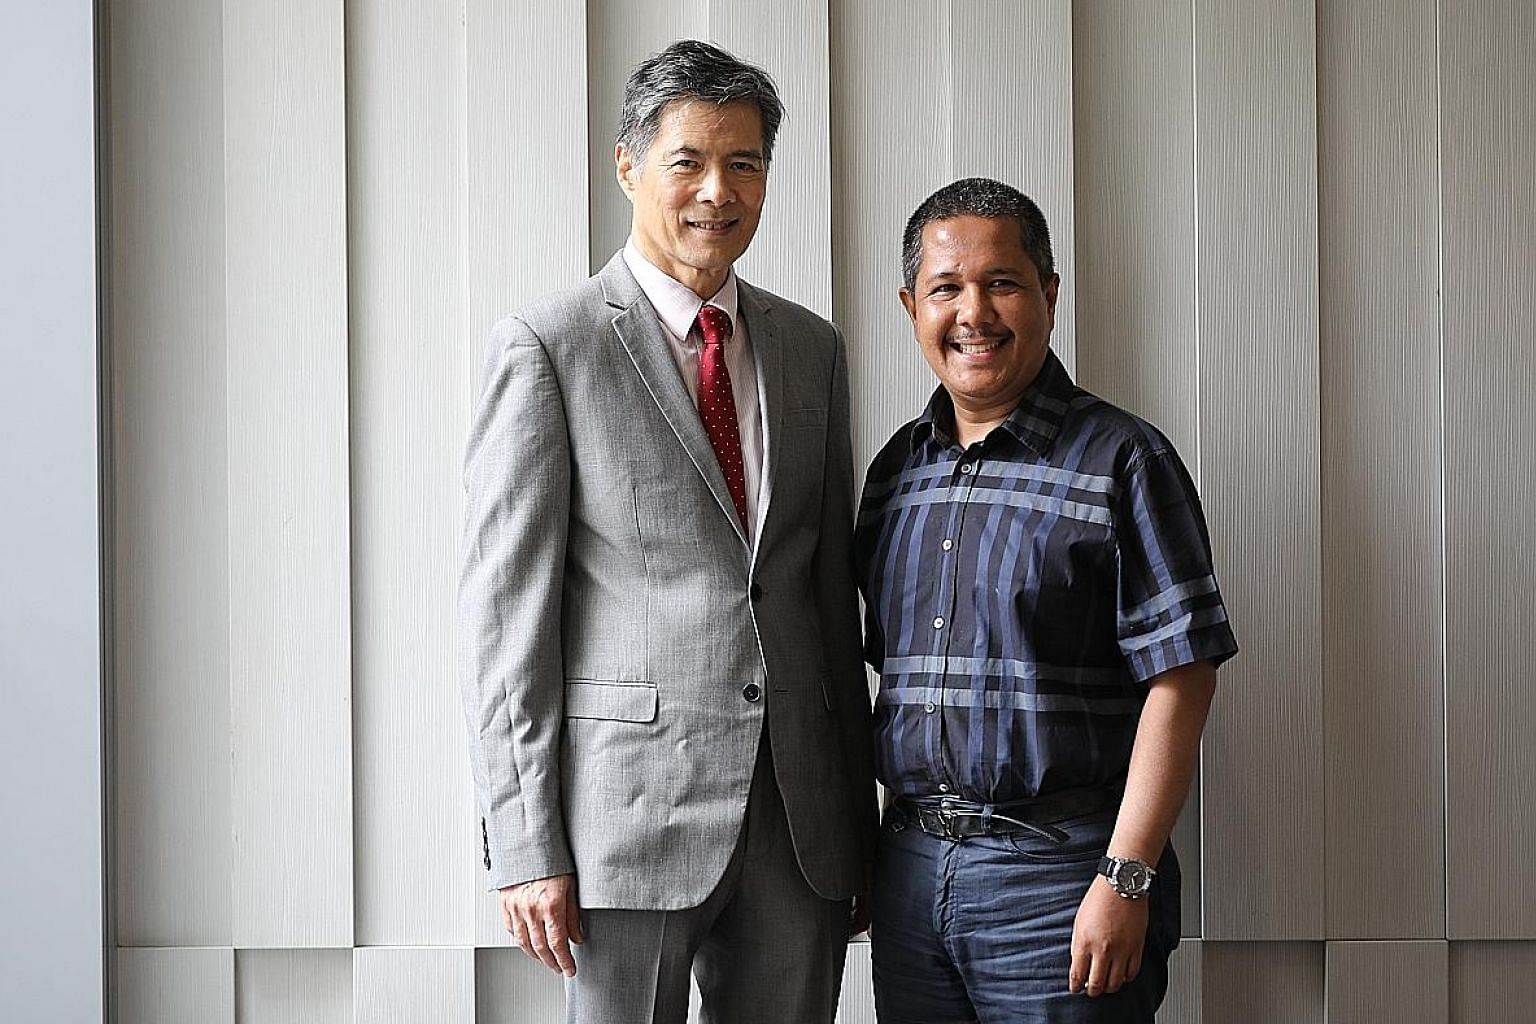 Professor Lim Seng Gee with Mr Arfan Awaloeddin, who has been functionally cured of hepatitis B under a new study led by Prof Lim. ST PHOTO: ONG WEE JIN